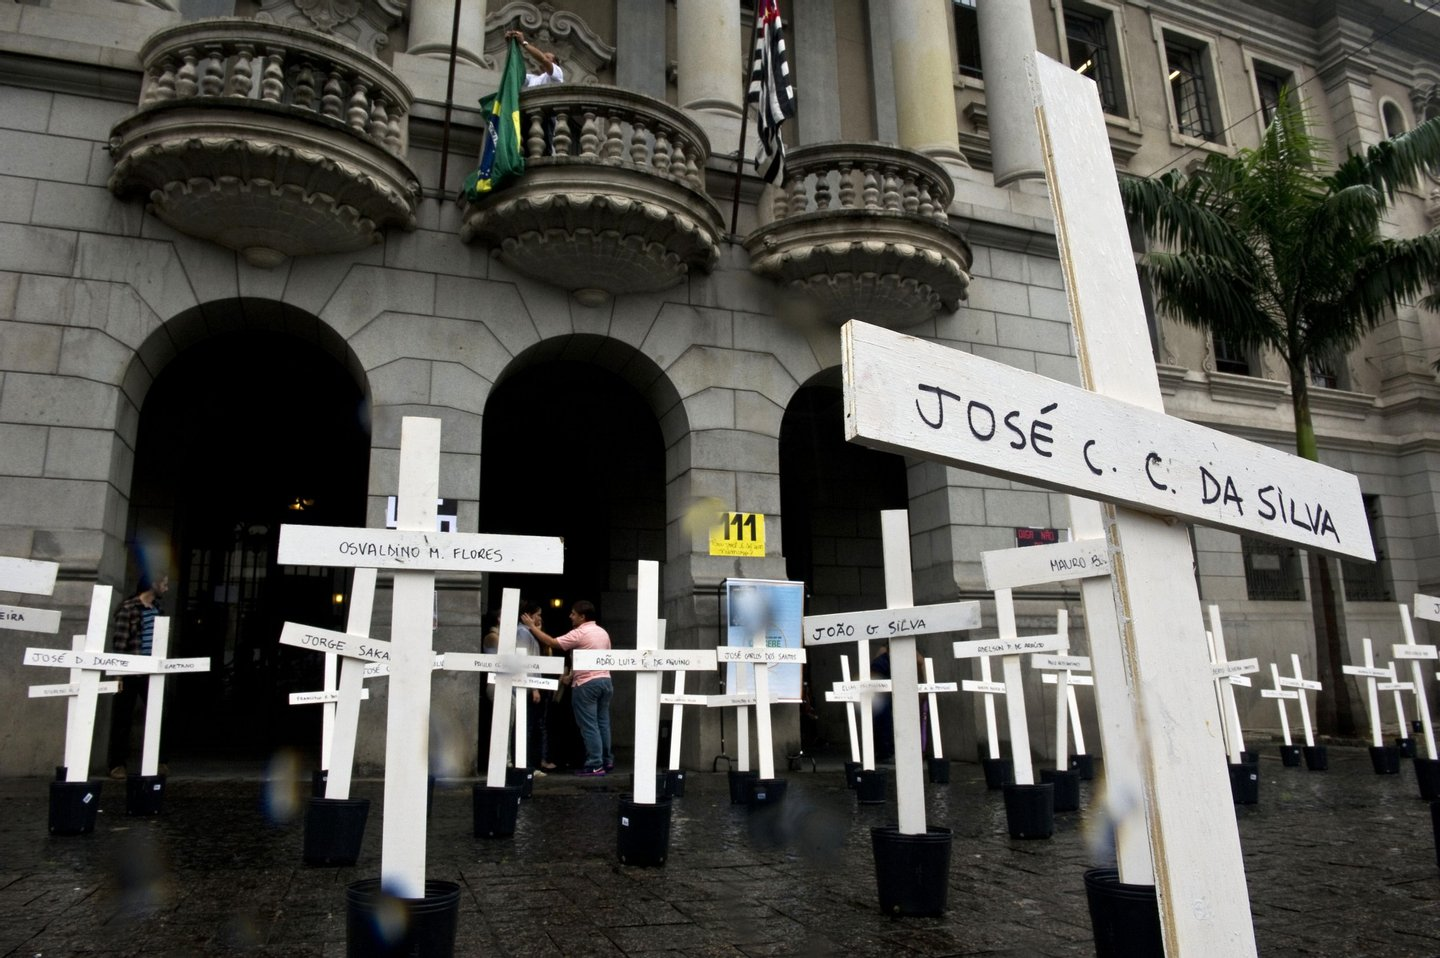 Crosses are seen in front of the School of Law of the University of Sao Paulo (USP) in homage to the inmates dead at the Carandiru Penitentiary massacre in Sao Paulo, Brazil on April 8, 2013. Twenty-six military police officers were to go on trial here Monday for the alleged execution-style killing of inmates during Brazil's deadliest prison uprising, which claimed the lives of 111 prisoners.AFP PHOTO / Nelson ALMEIDA (Photo credit should read NELSON ALMEIDA/AFP/Getty Images)